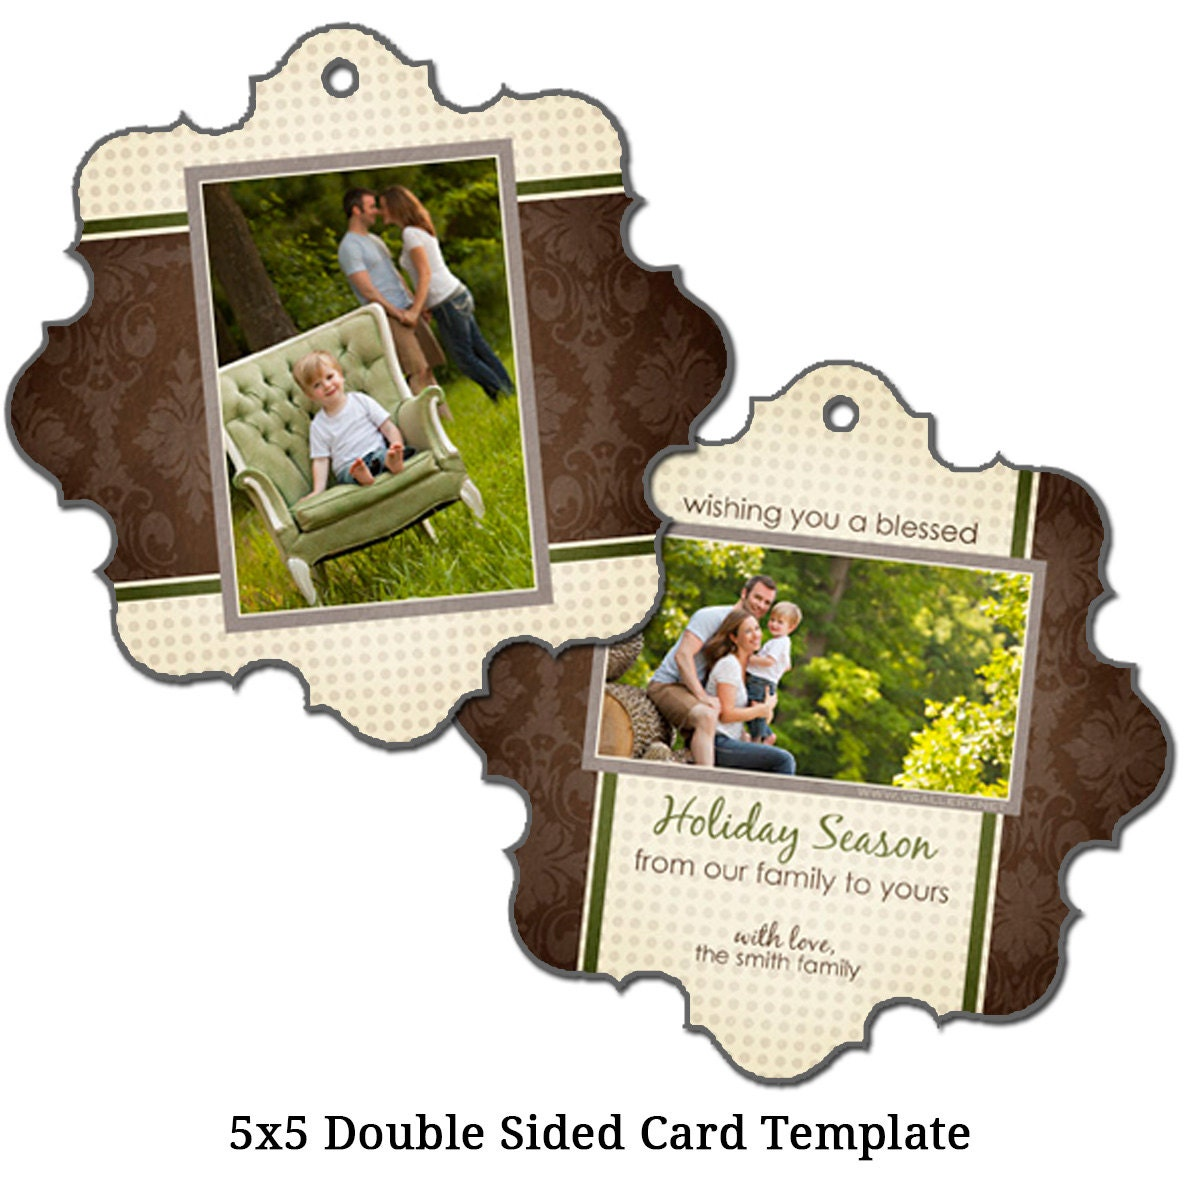 5x5 double sided christmas card template by vgallerydesigns. Black Bedroom Furniture Sets. Home Design Ideas